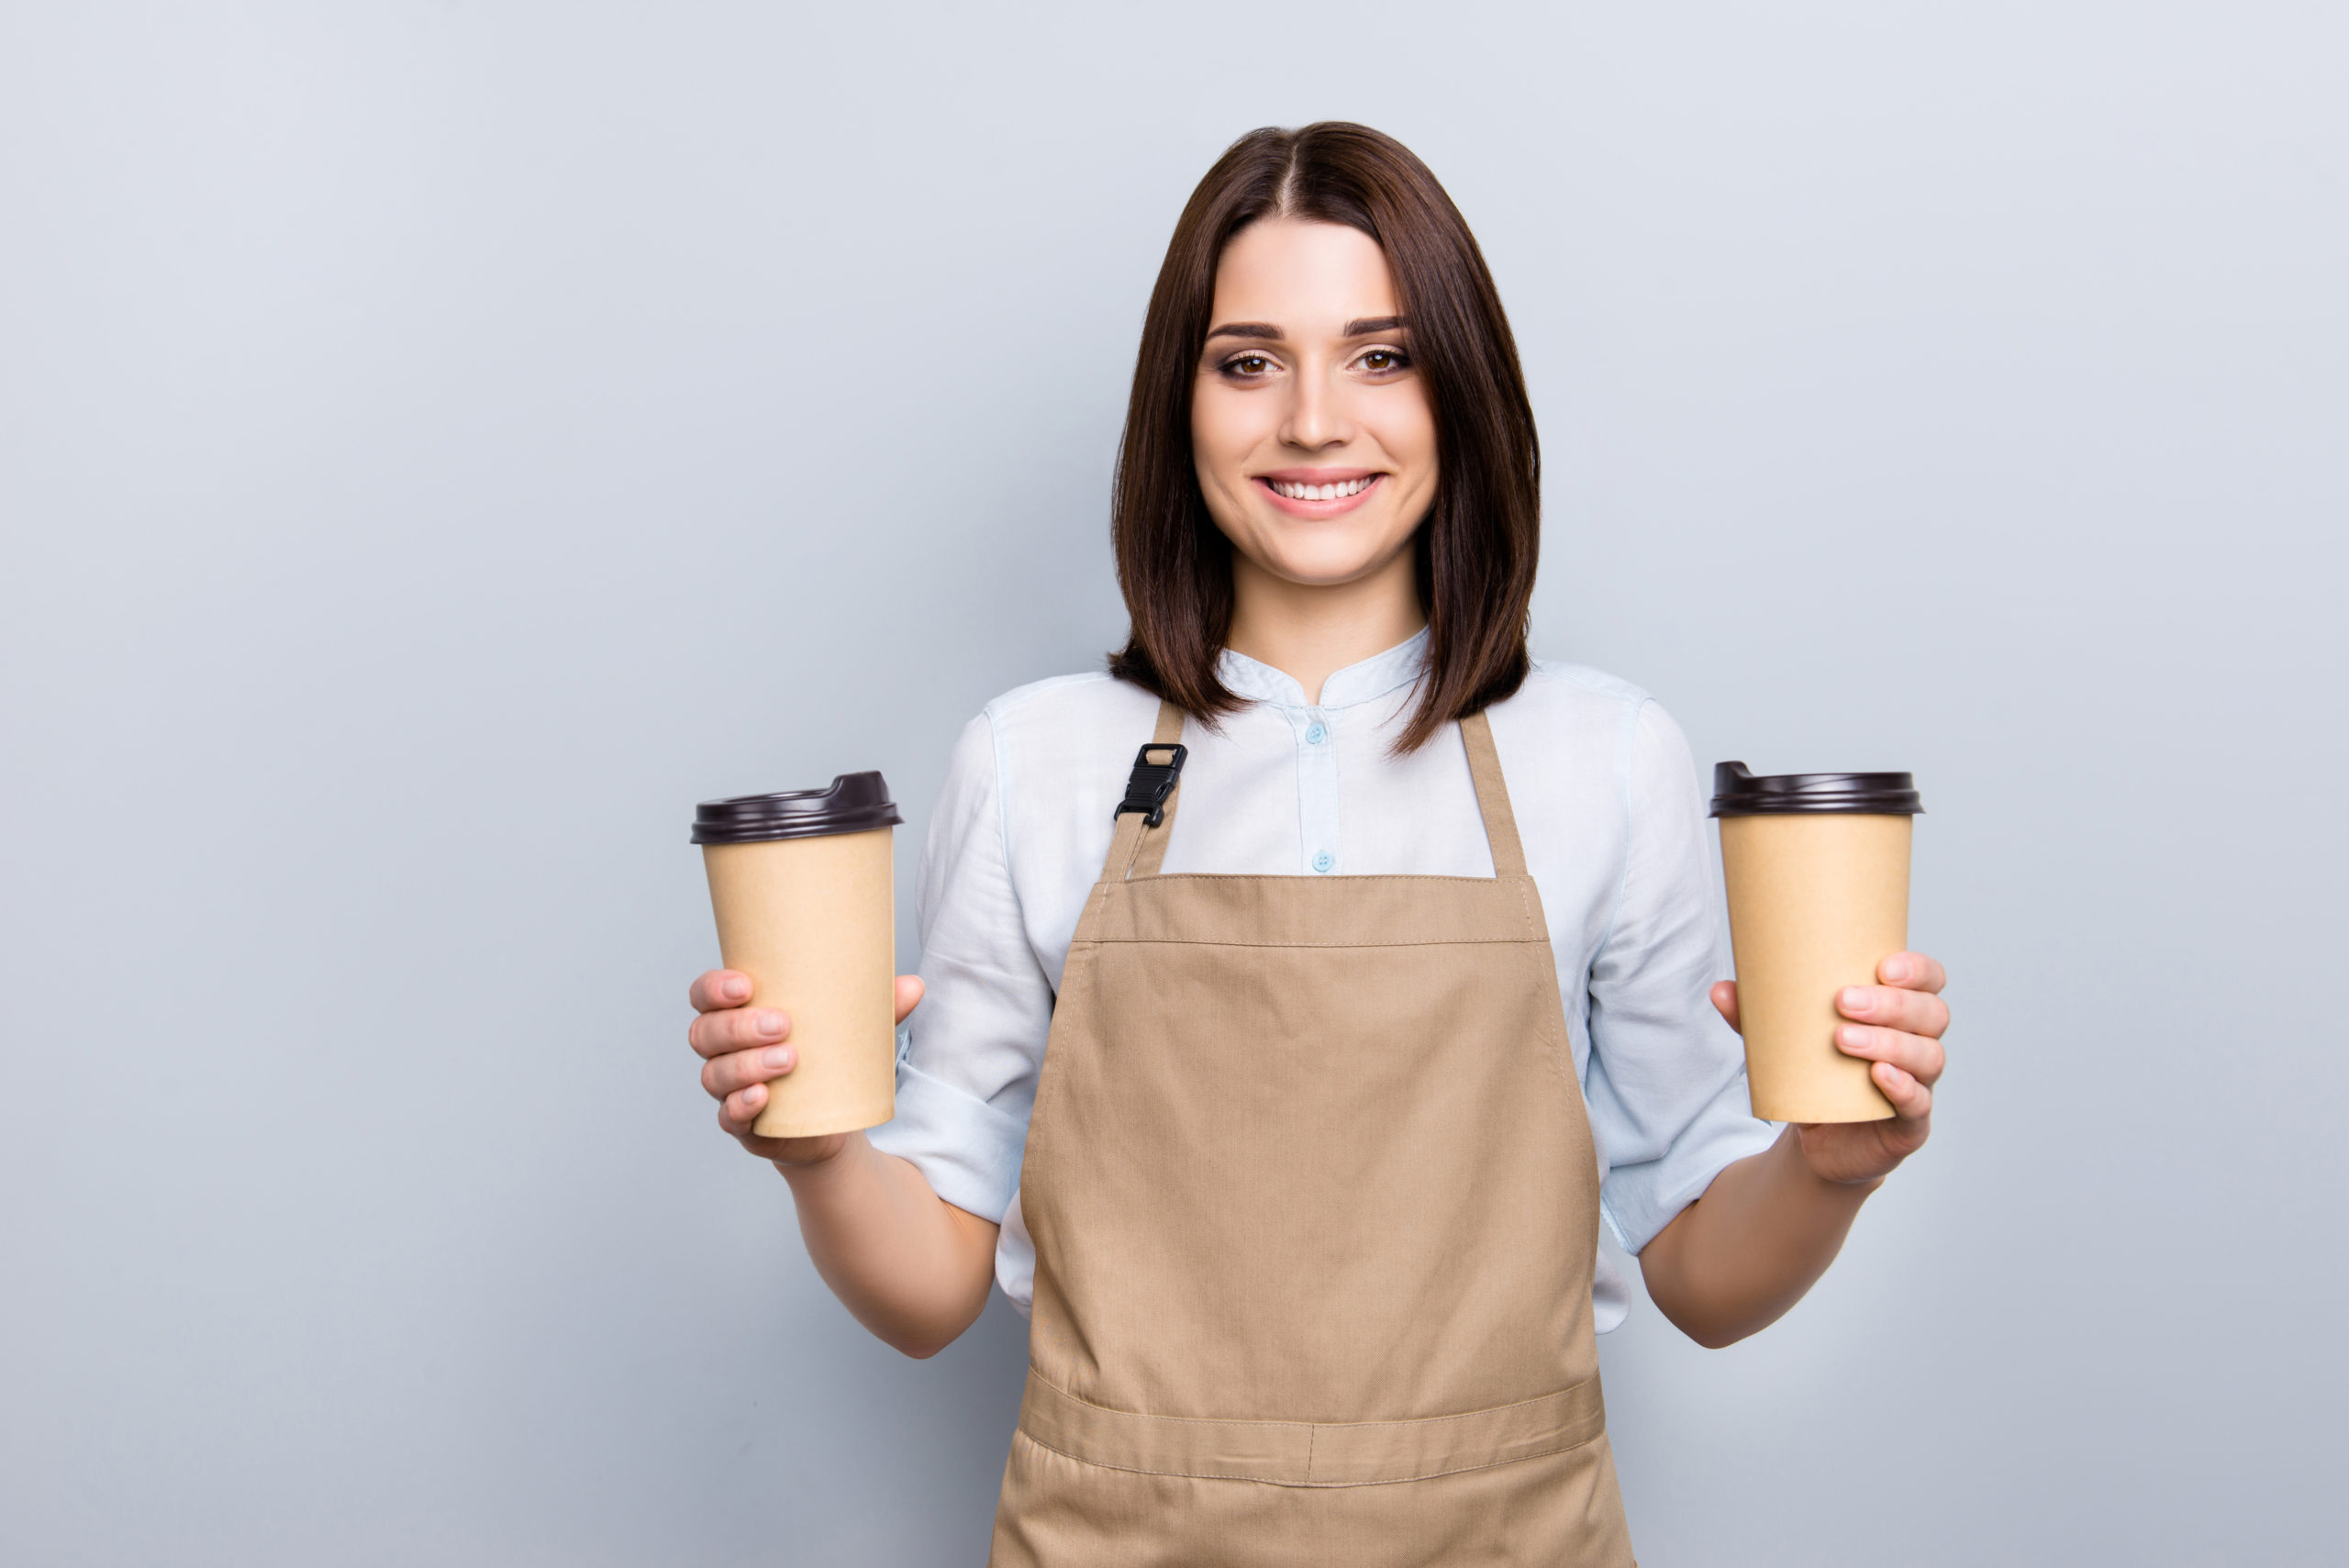 Barista hold two cups of coffee, representing the doubling of orders for the past two years.